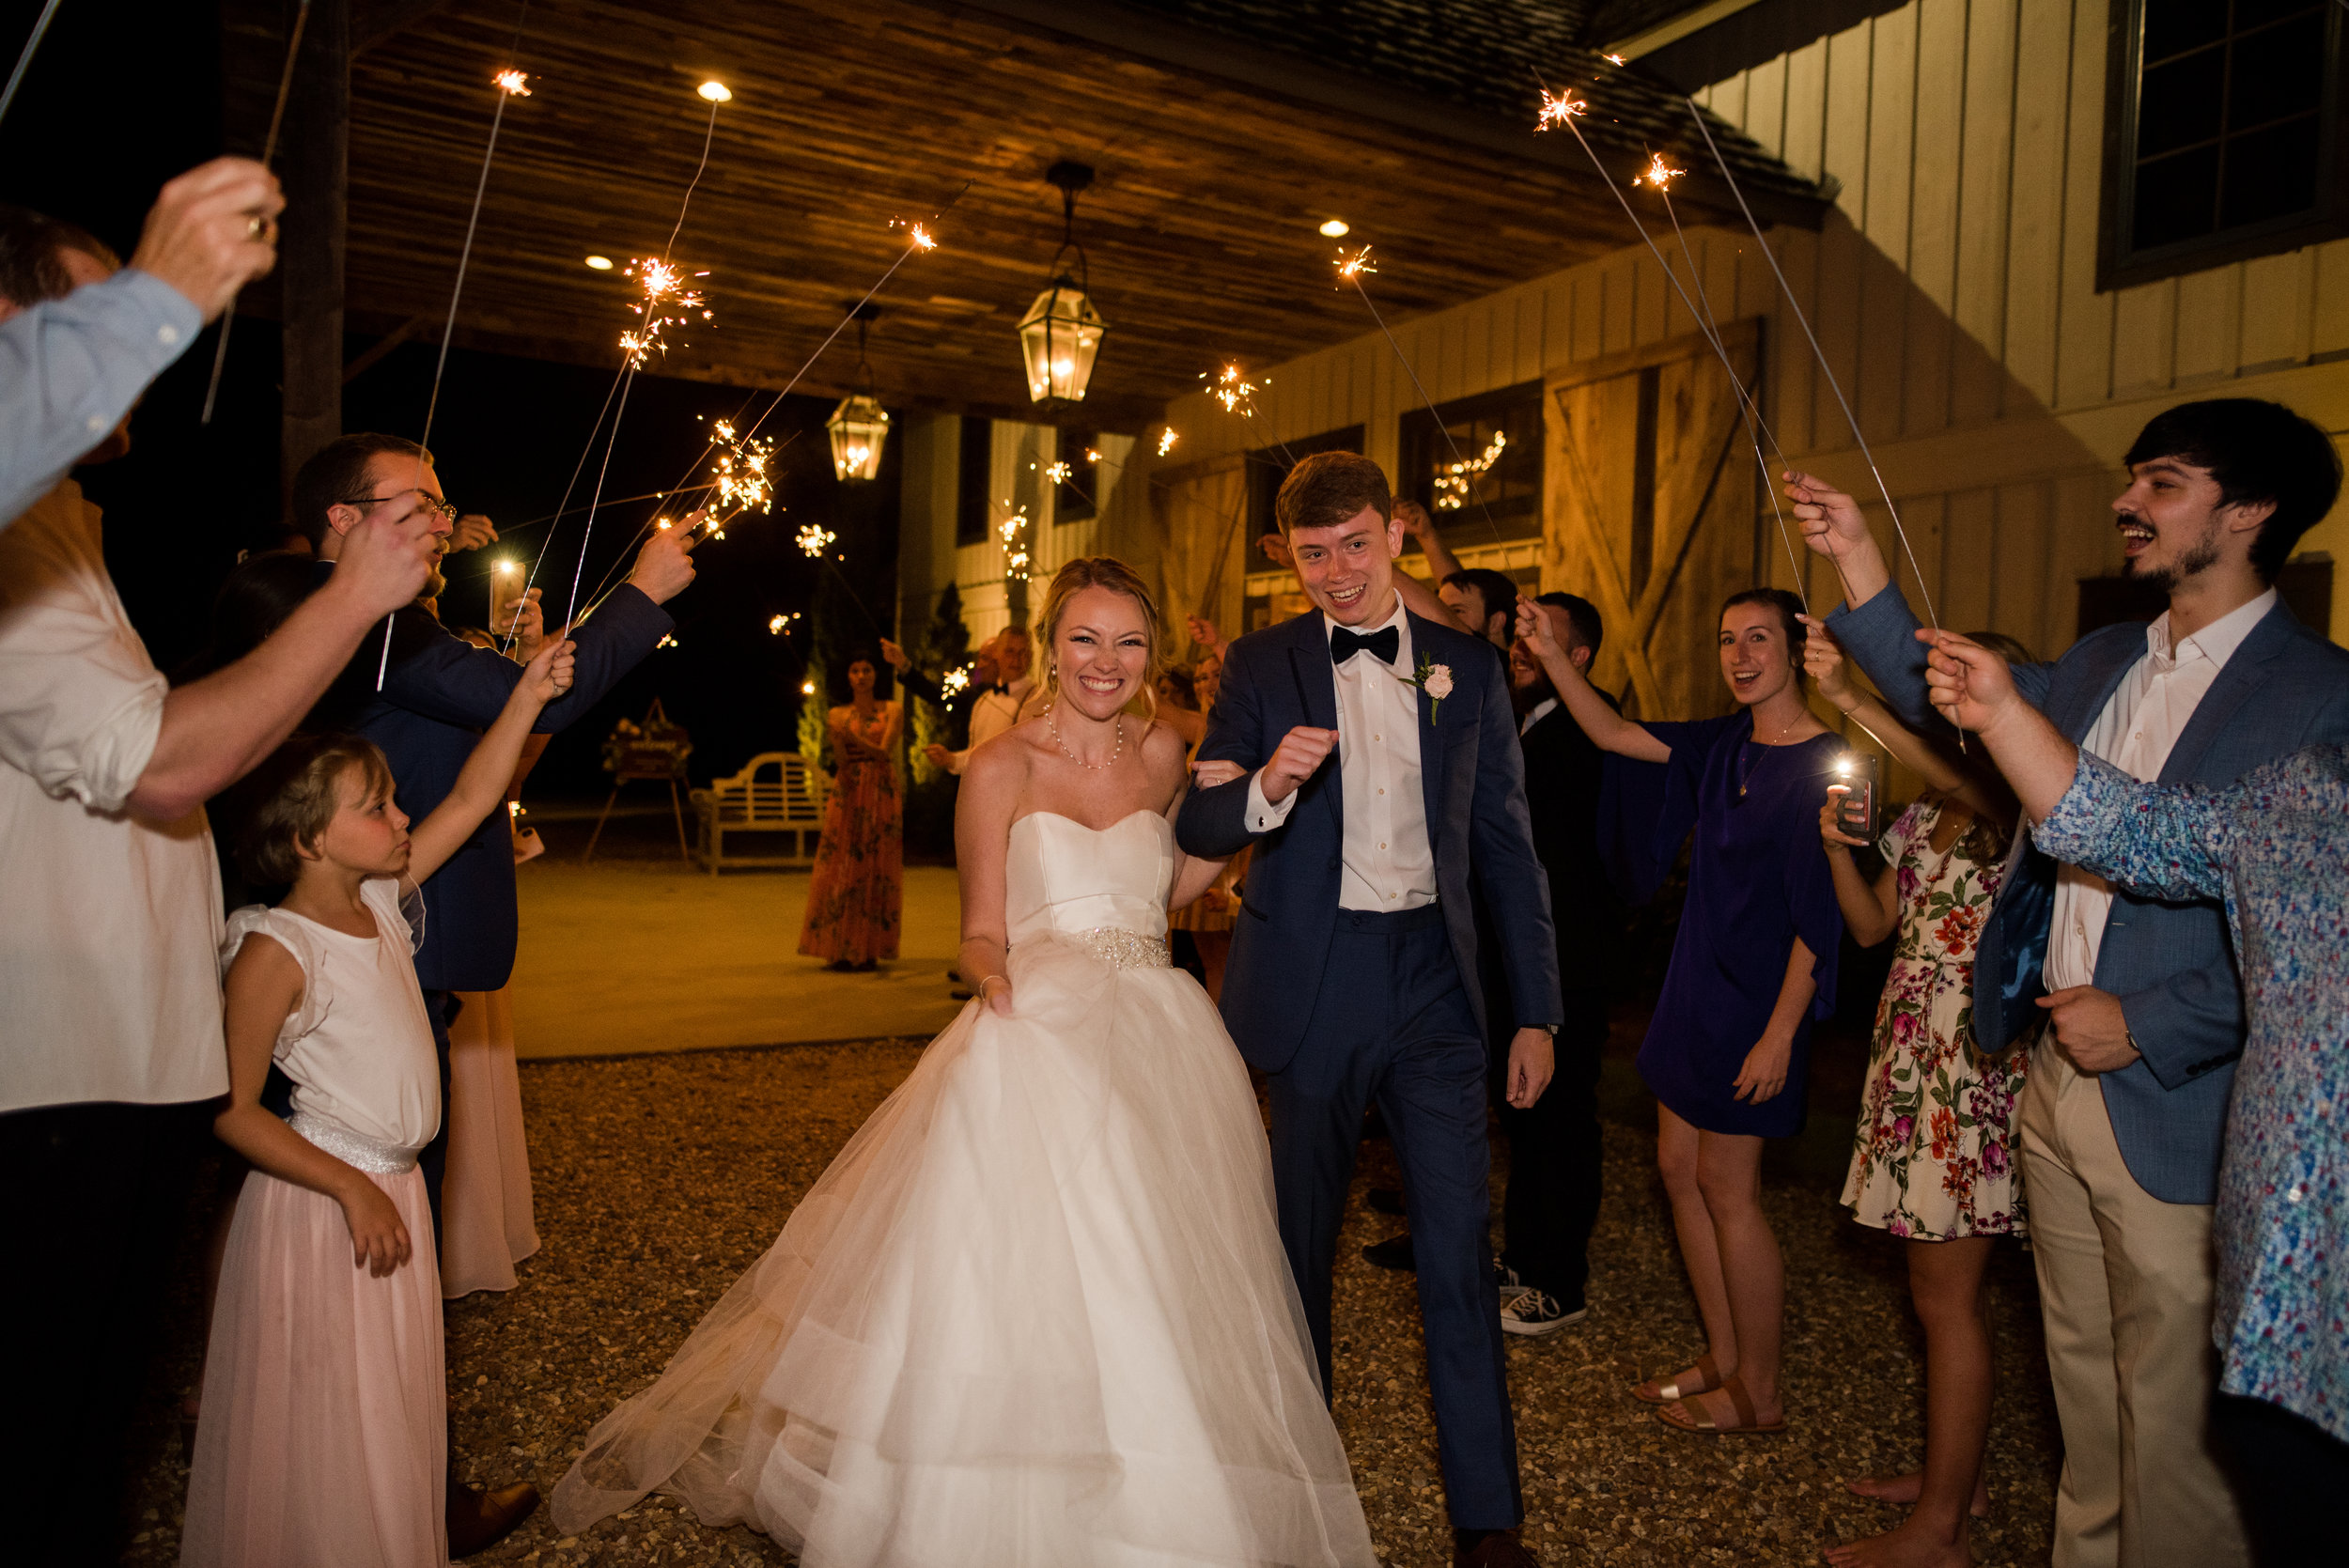 The Barn at Bridlewood wedding in Hattiesburg, Mississippi (MS) in June | Bride and Groom Wedding Exit